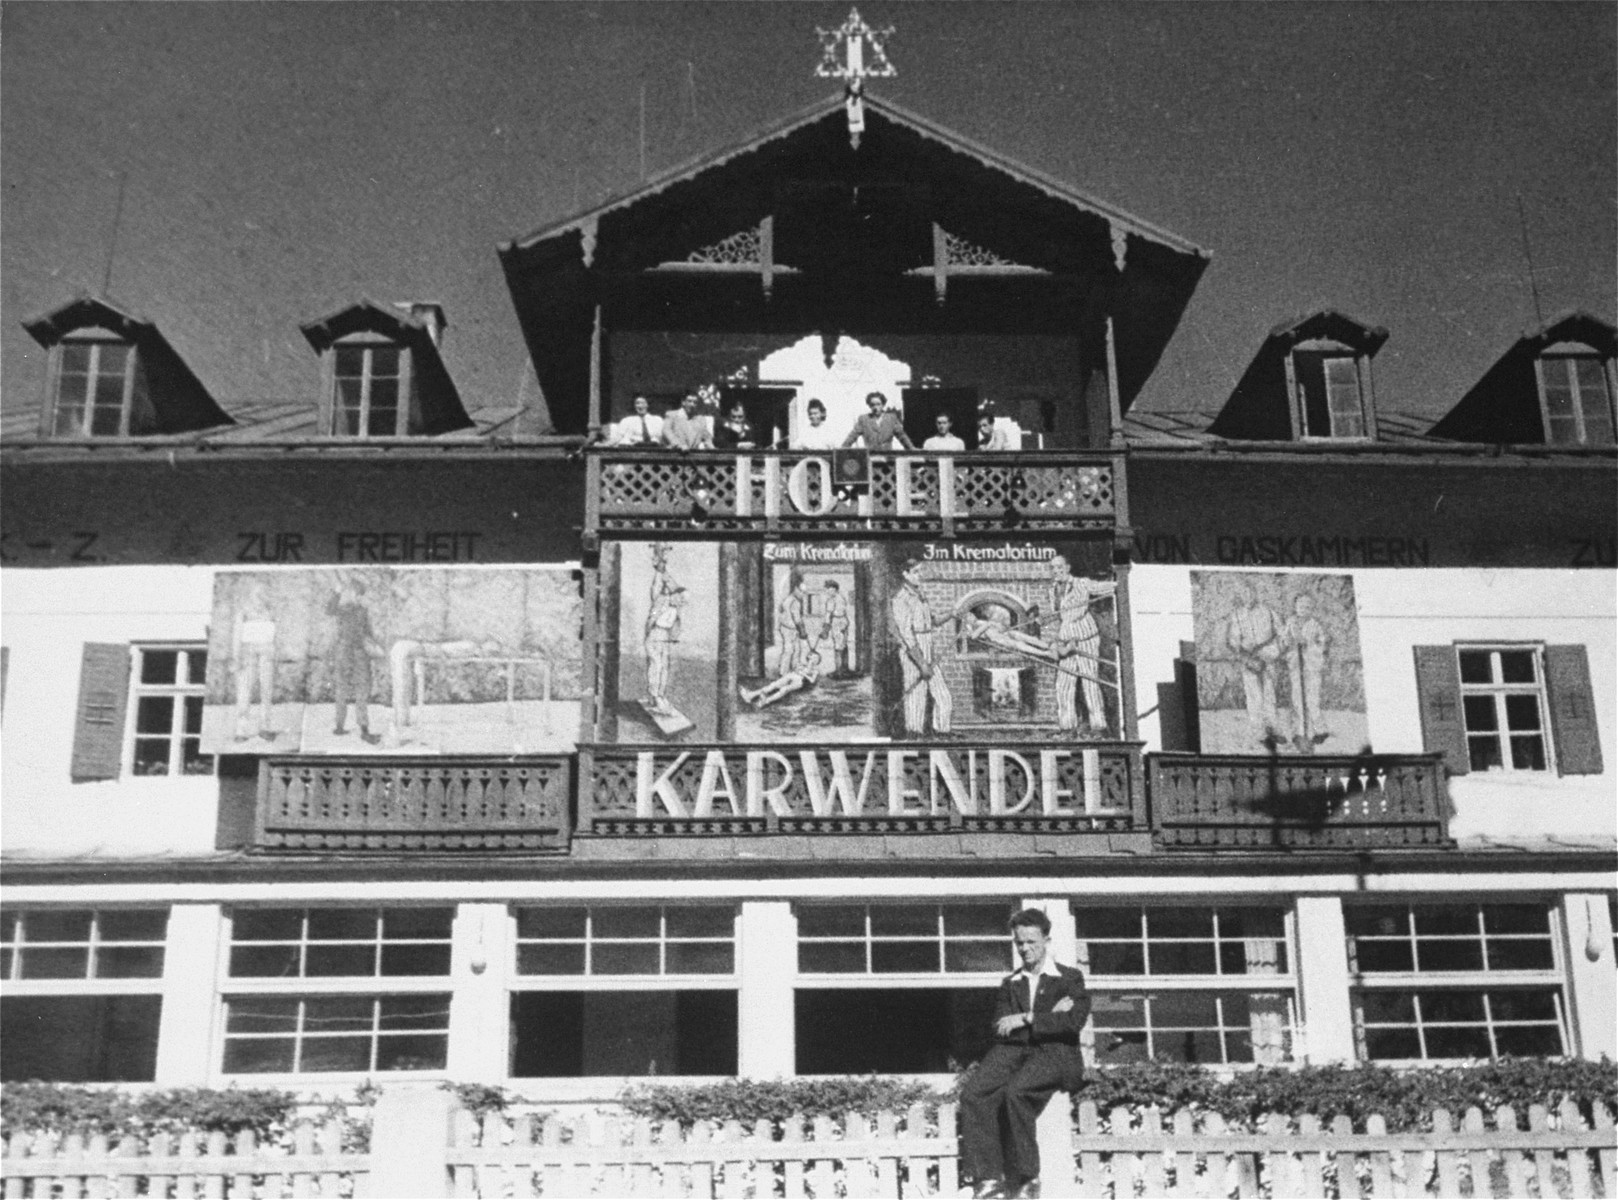 View of the Hotel Karwendel at the Mittenwald displaced persons camp.    The murals on the upper story of the building depict the experiences of many DPs during the war.